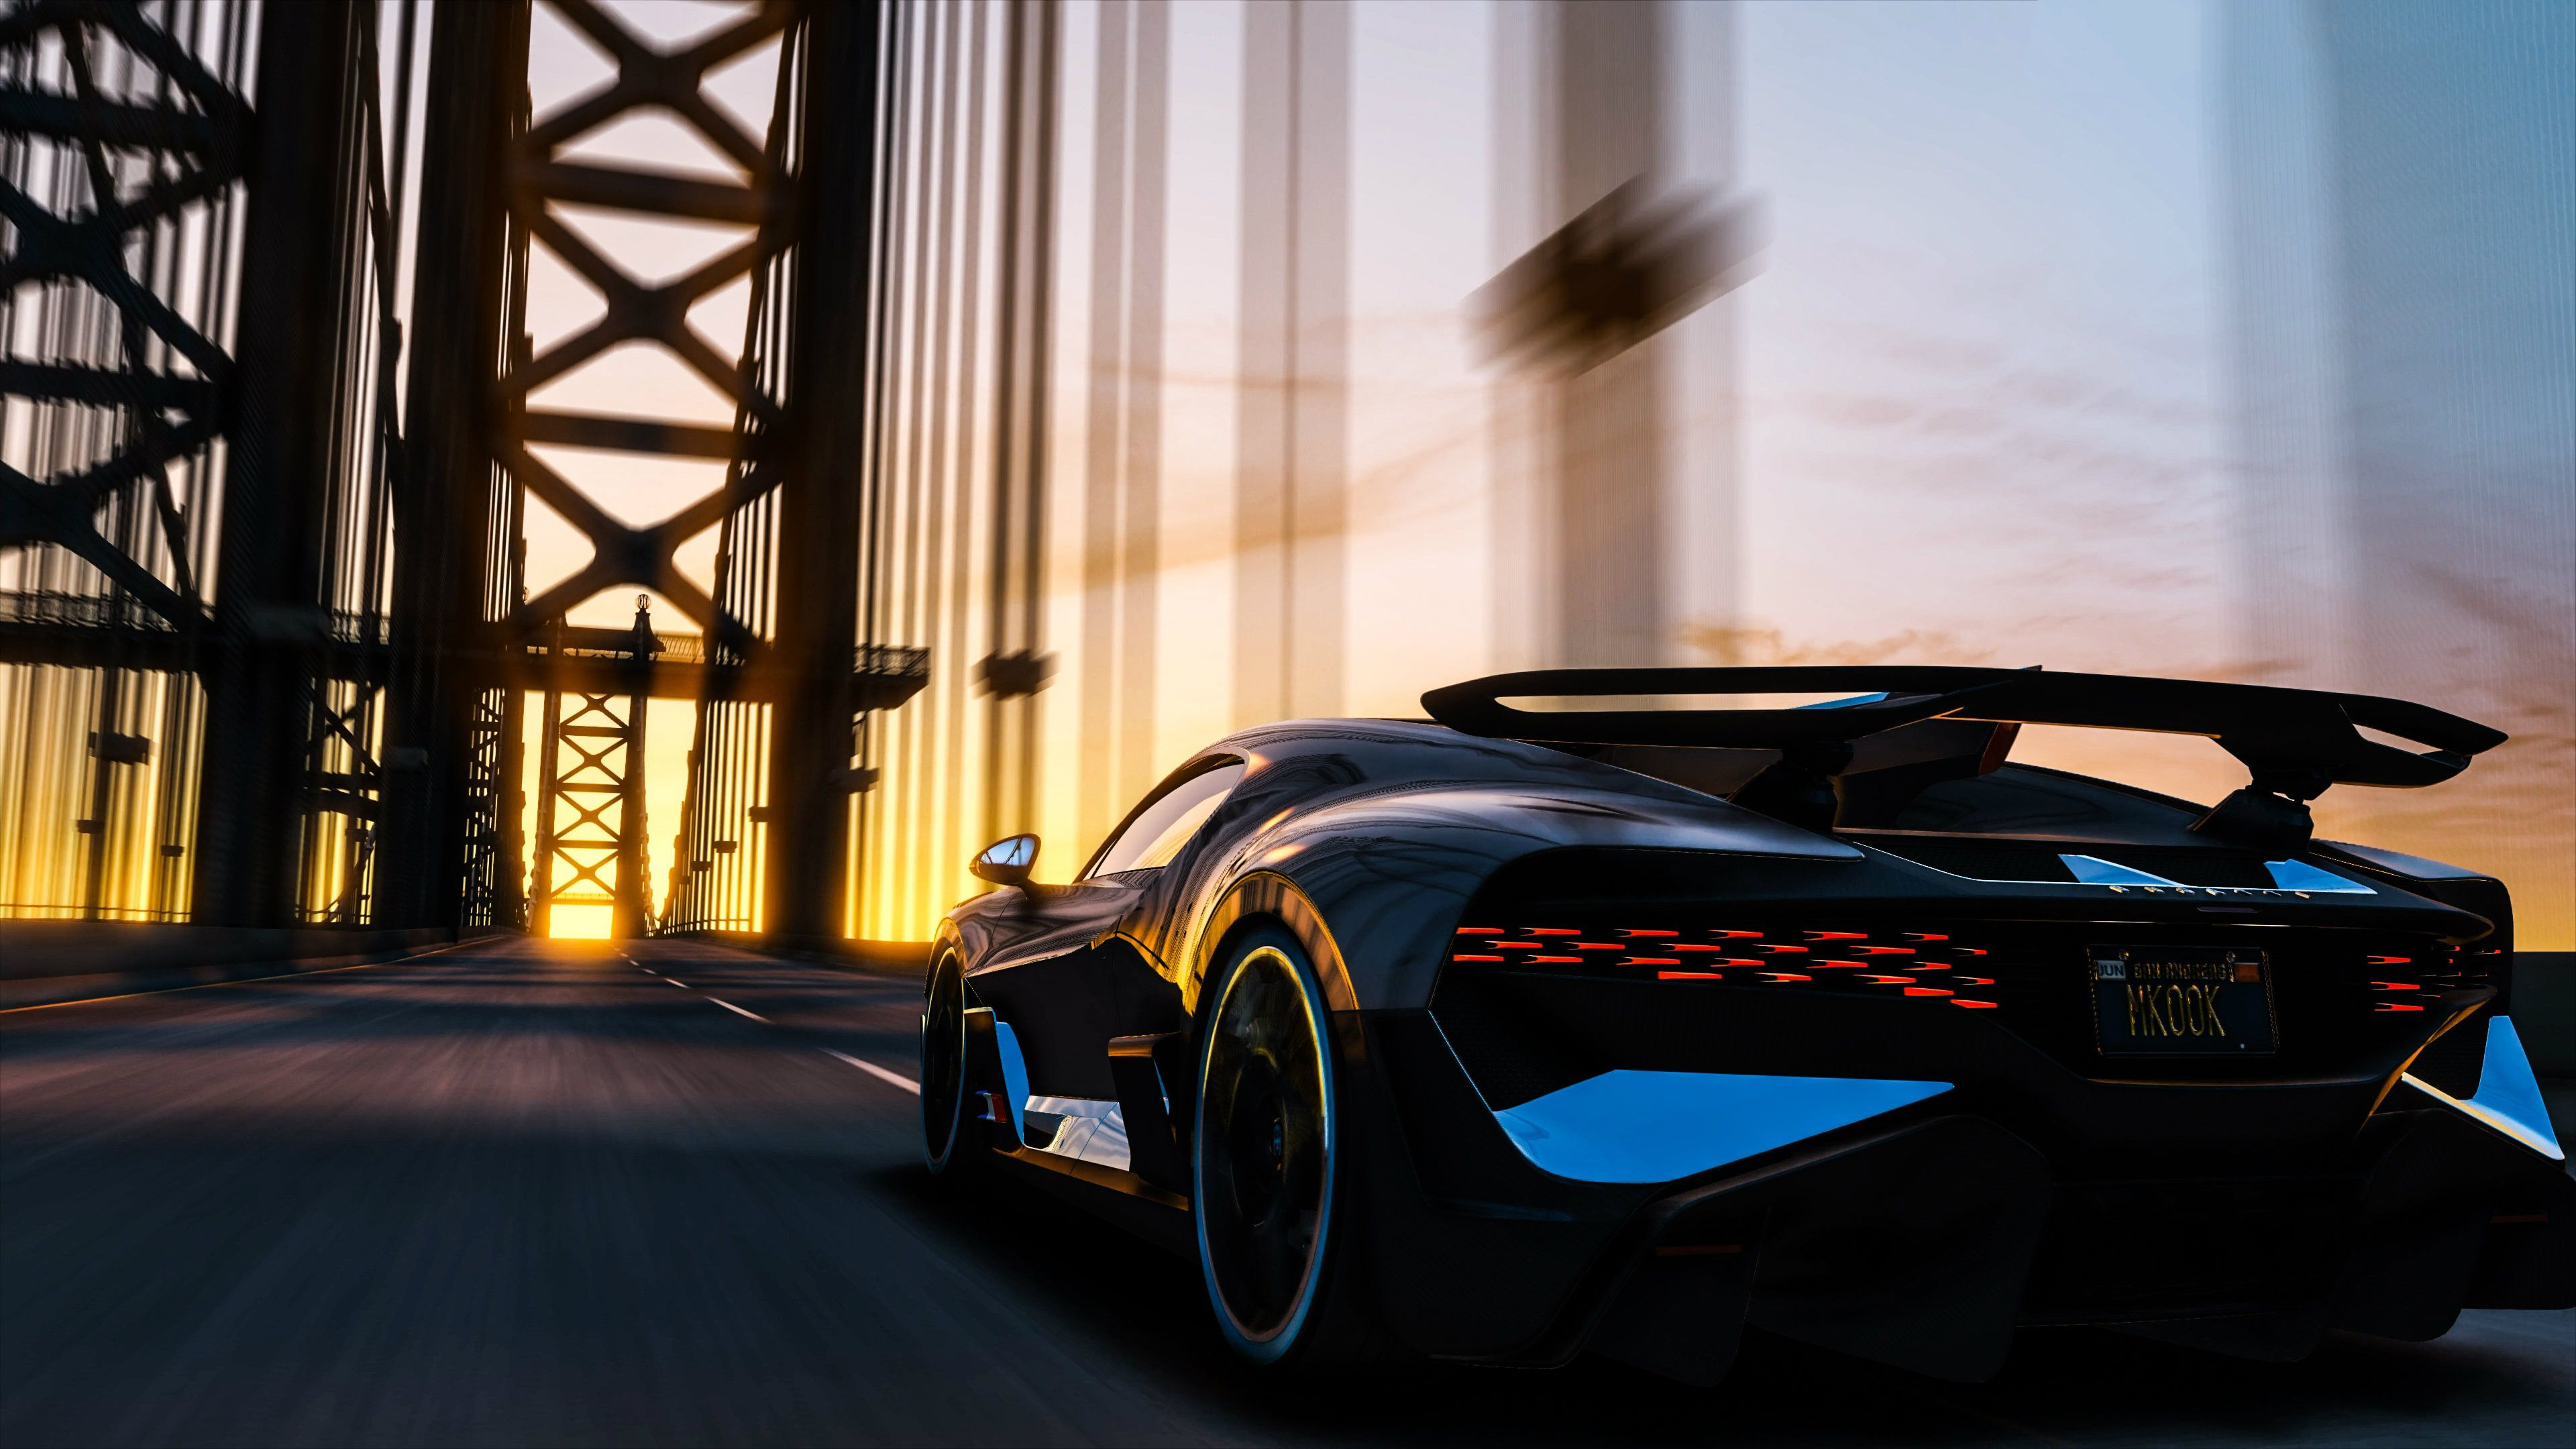 Bugatti Divo Bridge 4k Hd Wallpapers Gta 5 Wallpapers Cars Wallpapers Bugatti Wallpapers Bugatti Divo Wallpapers Bugatti Wallpapers Bugatti Car Wallpapers